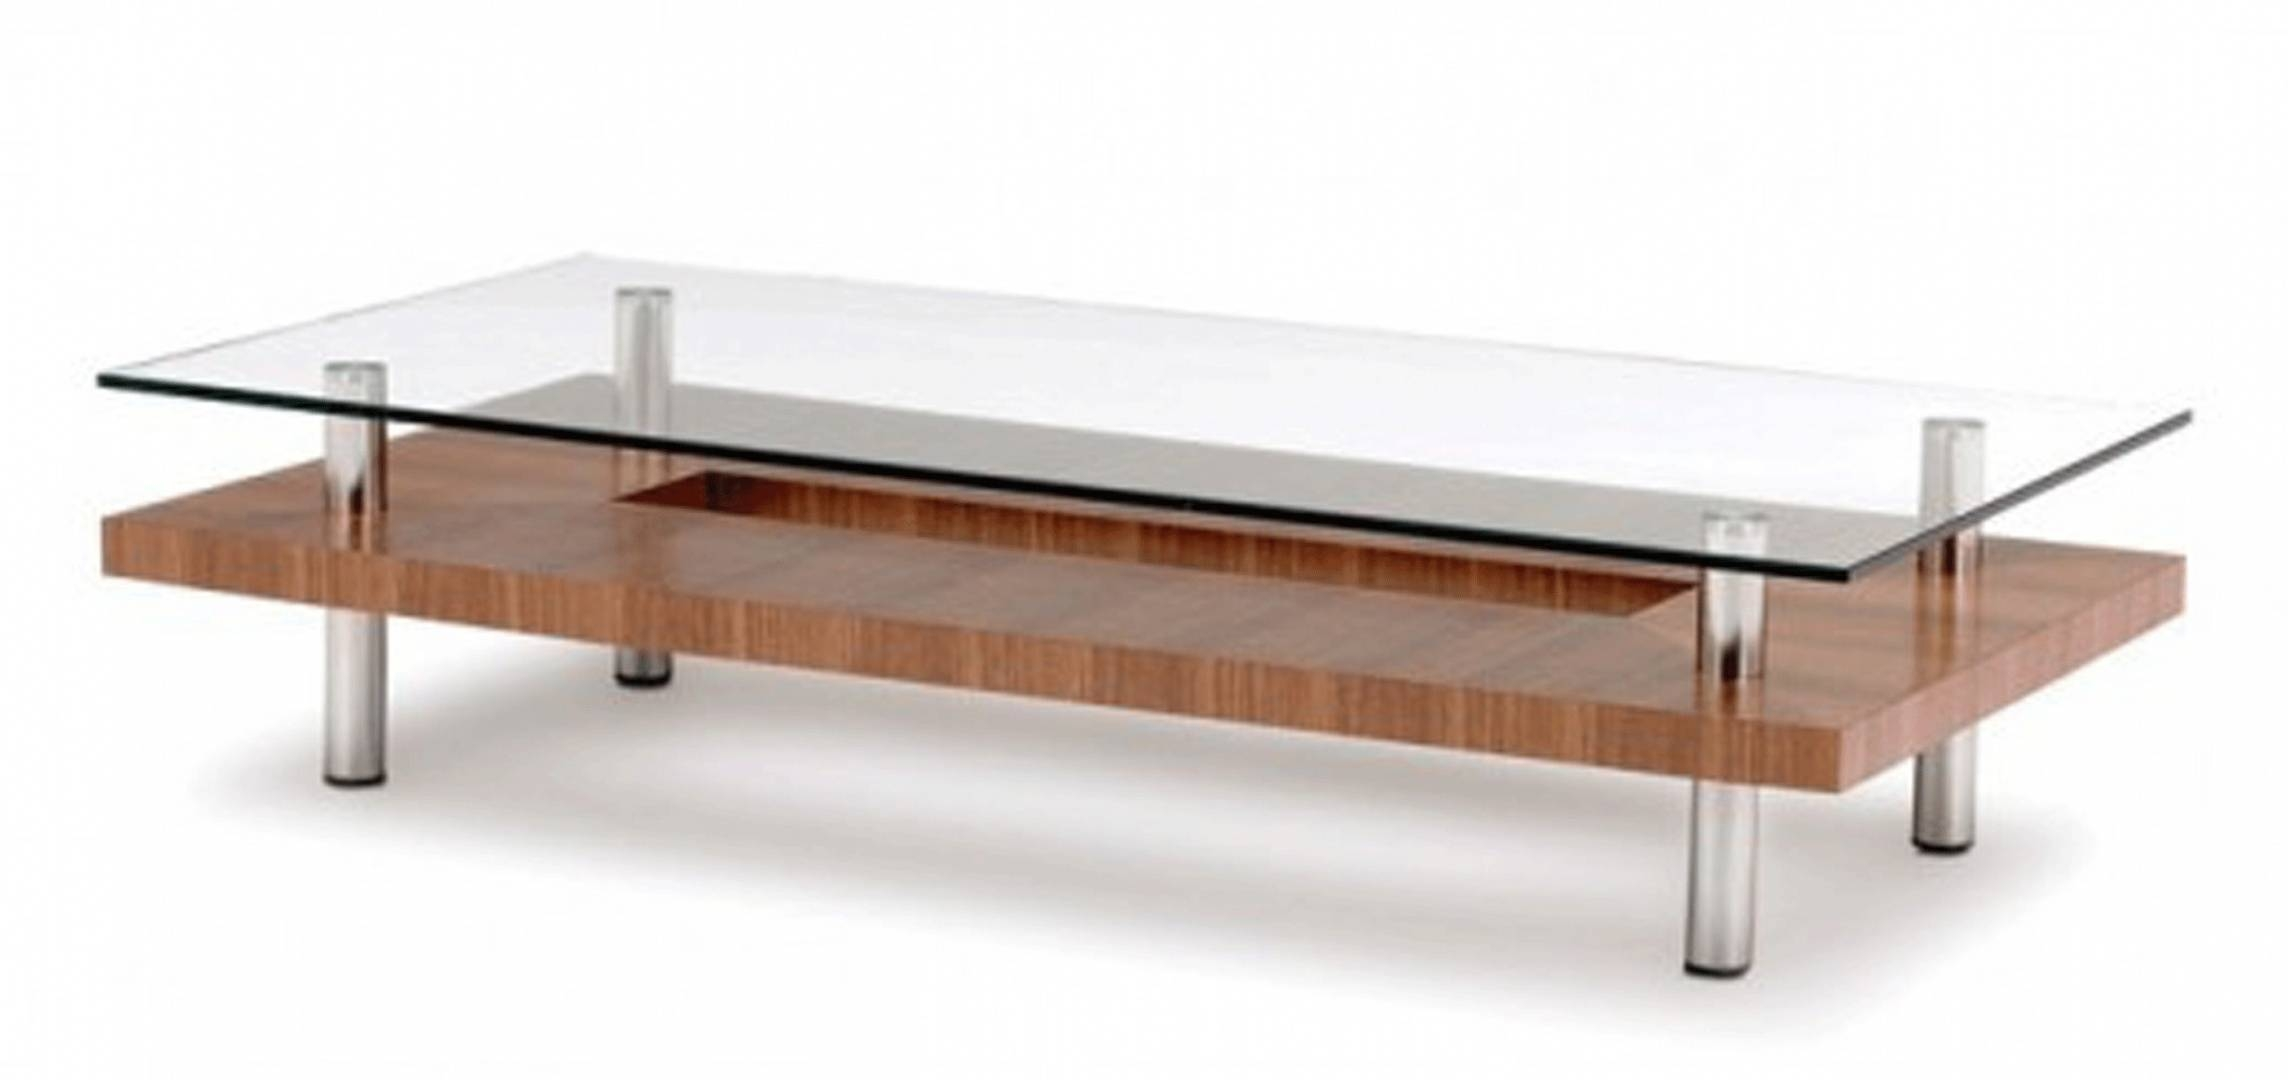 Wood And Chrome Coffee Table – Home Salers intended for Wood Chrome Coffee Tables (Image 27 of 30)